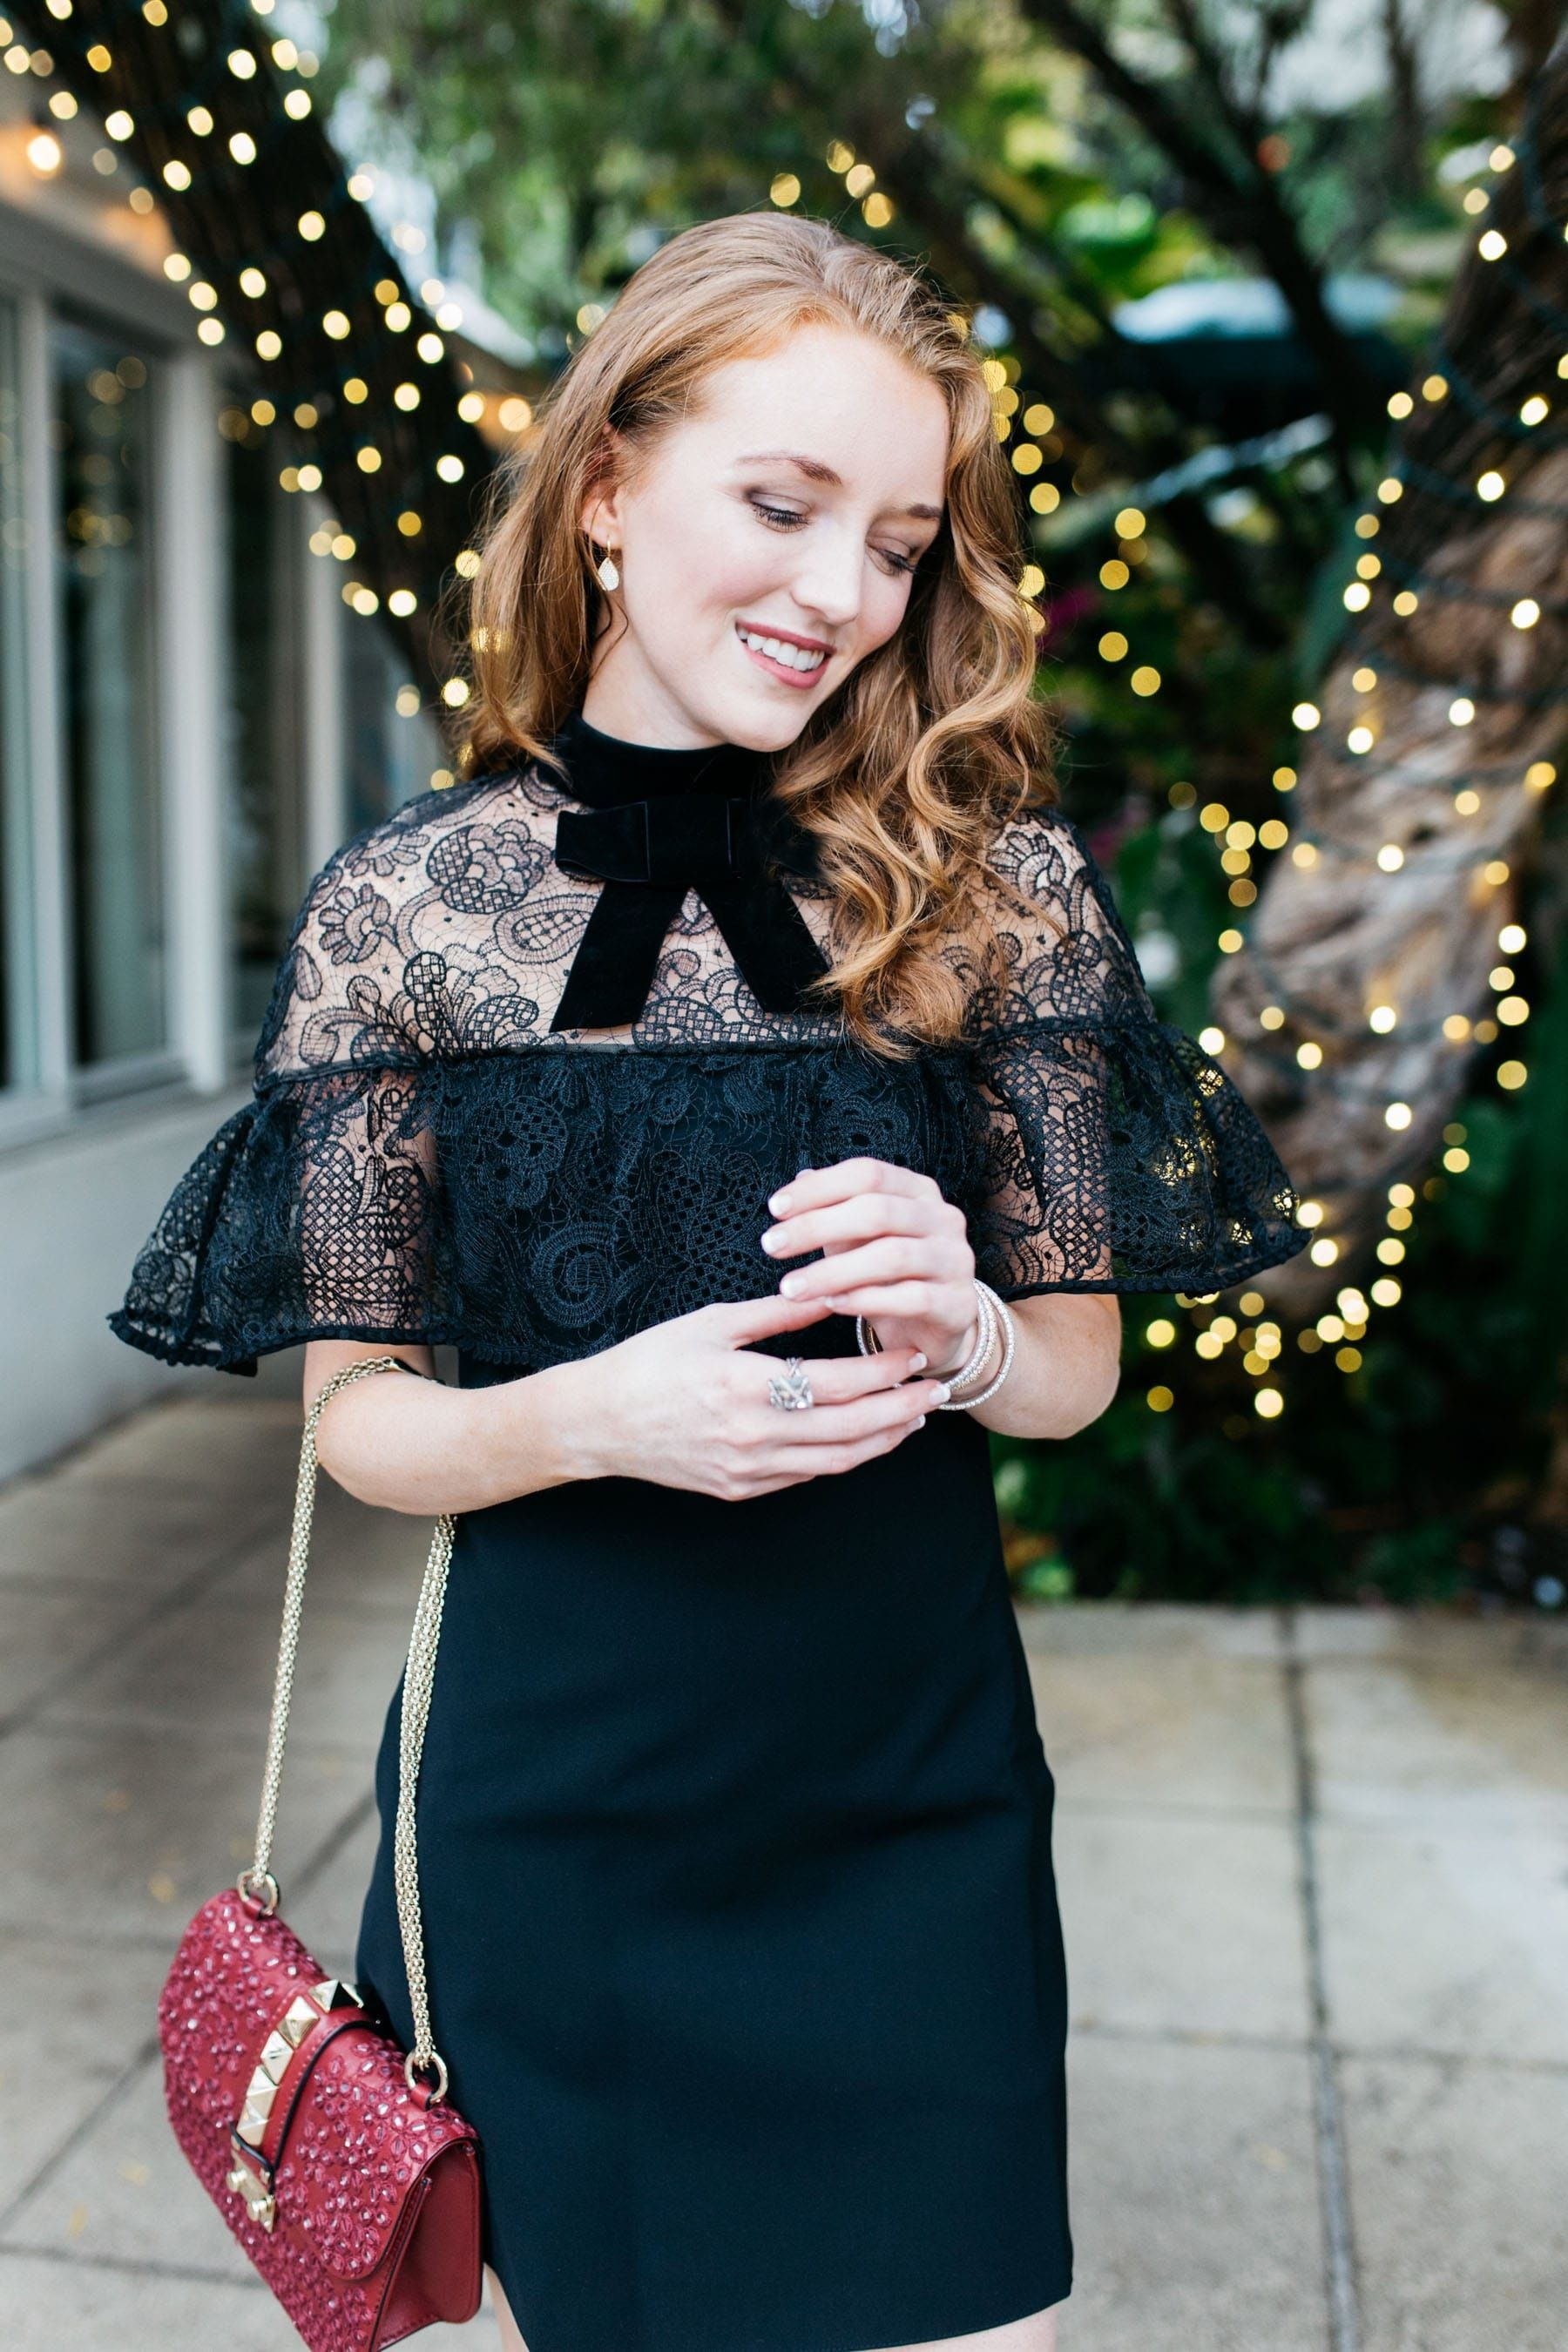 Cozy and Chic Holiday Looks, black lace tie neck top dress and burgundy over the shoulder handbag | Divine Style